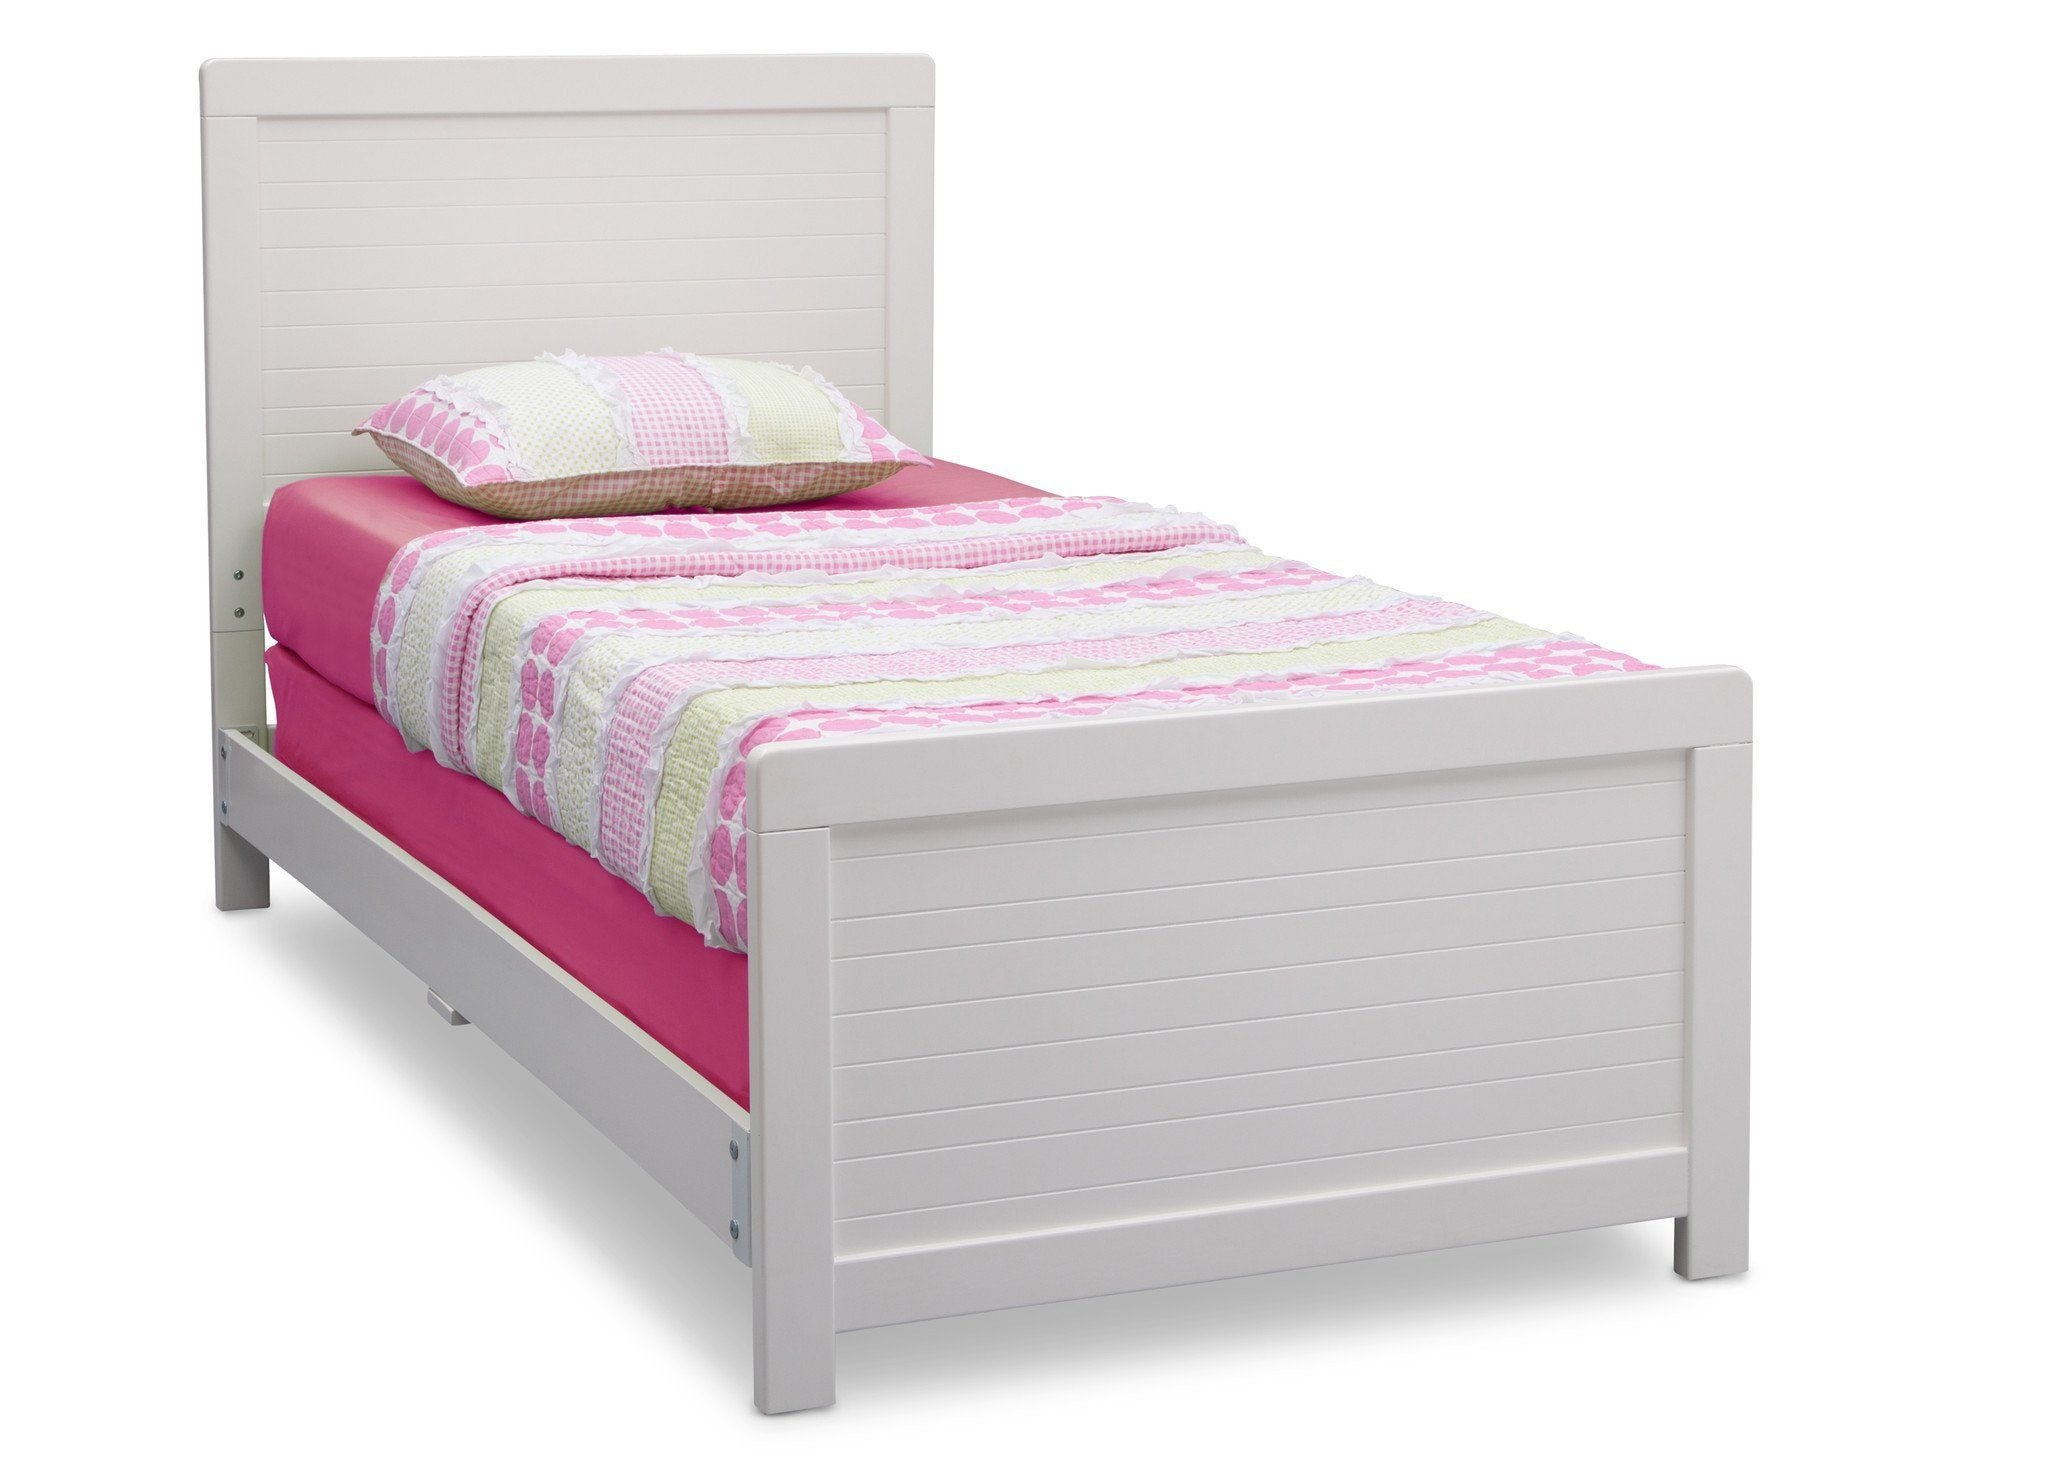 boy beds frames dle size loft full boys designs bed inspiration headboards gallery frame si bedroom girl ikea raindance to with modern k low for rails how decorate mattress of twin floor childrens toddler storage from single canada set cheap underneath twi girls kids